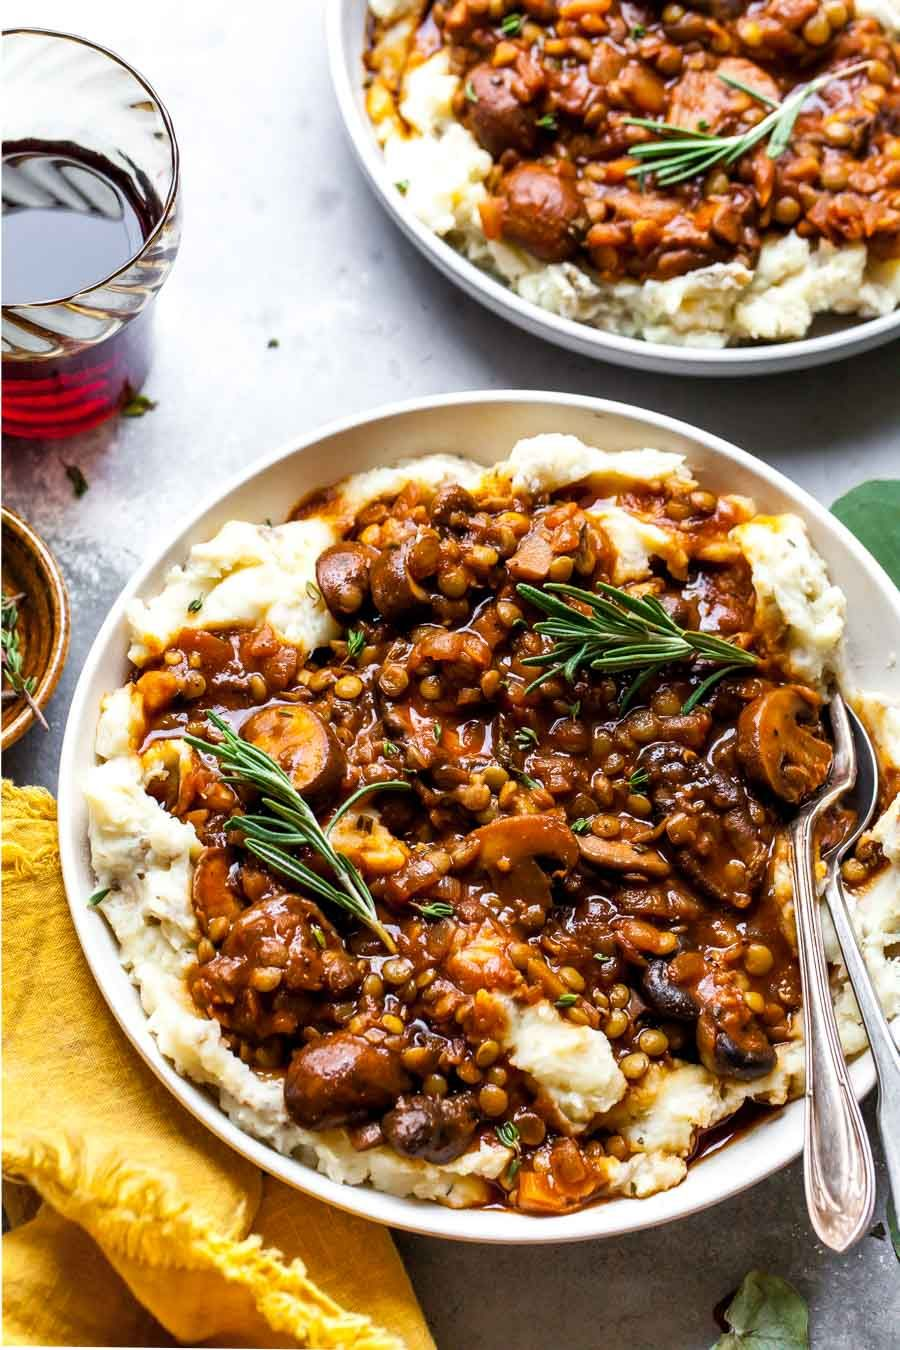 Lentil and Mushroom Stew over Potato-Parsnip Mash | Dishing Out Health